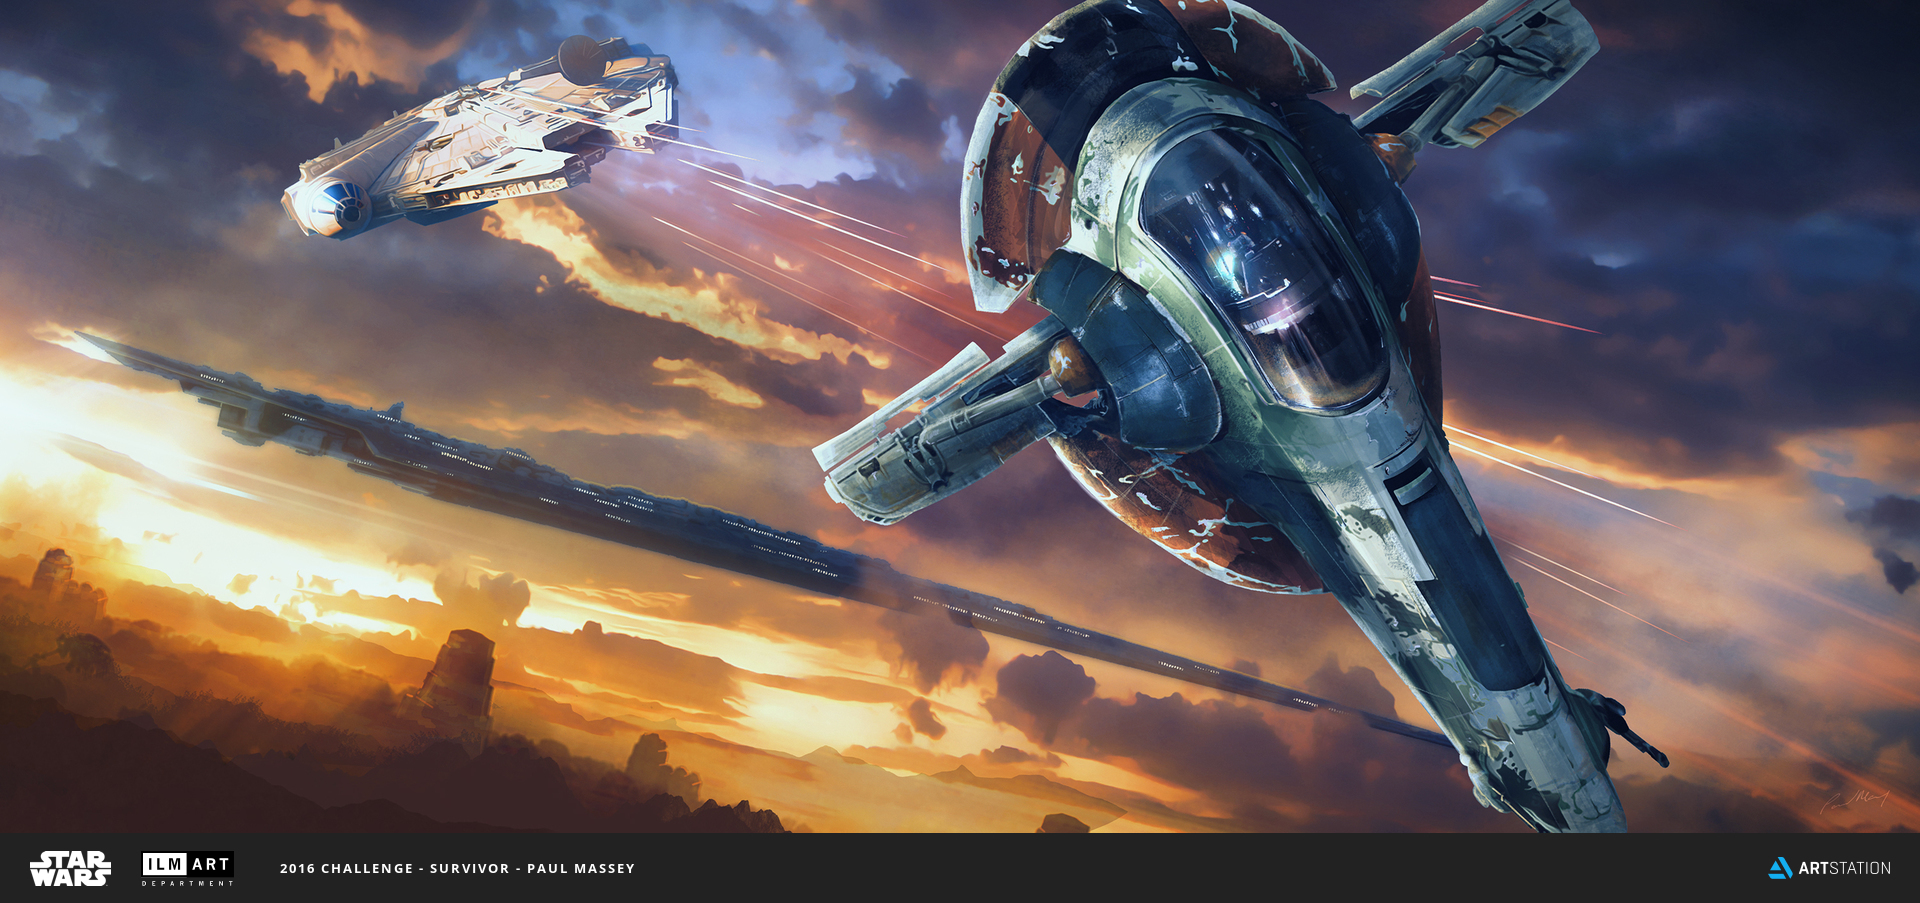 2016 ILM Art Department Challenge Entry by Paul Massey